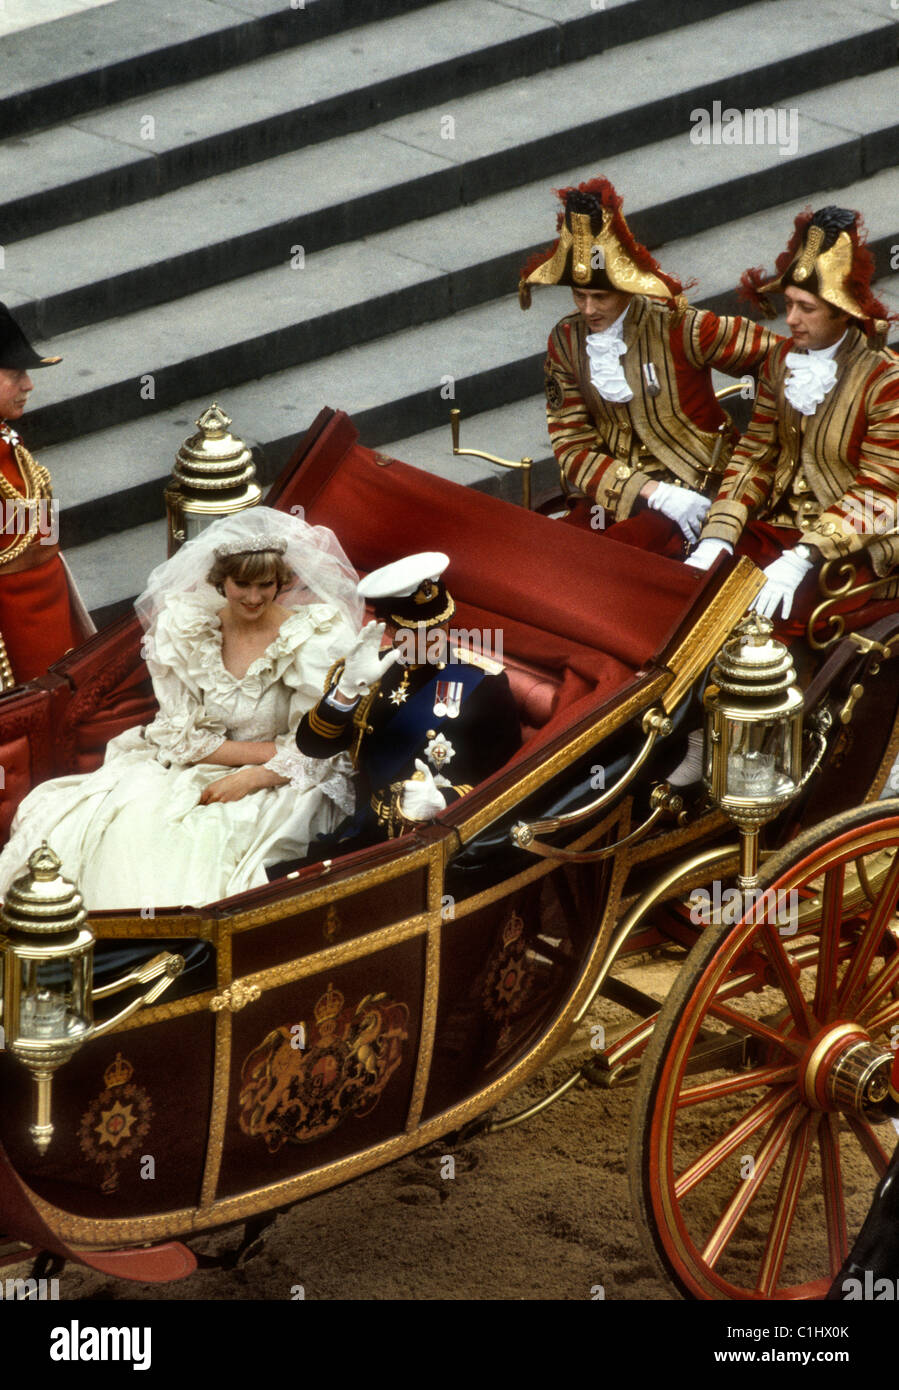 Royal Wedding of Prince Charles and lady Diana Spencer Stock Photo